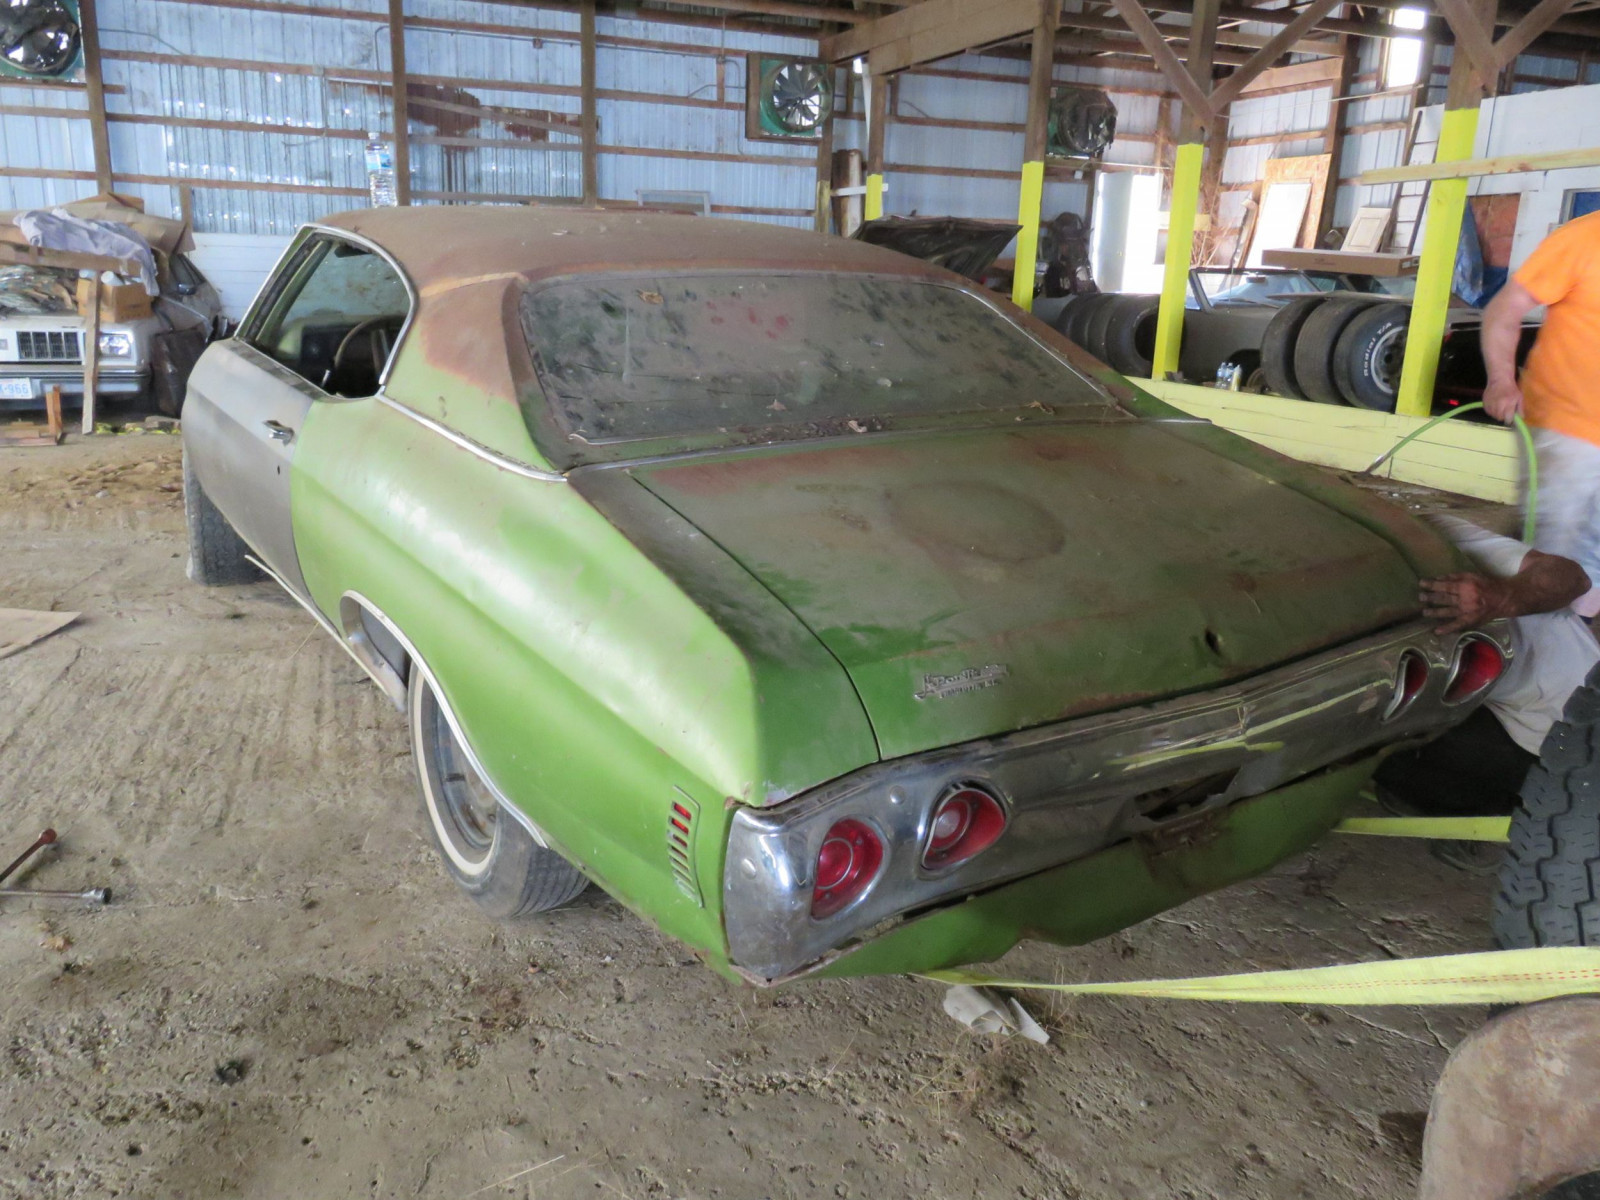 1971 Chevrolet Chevelle Rolling Body for Project - Image 5